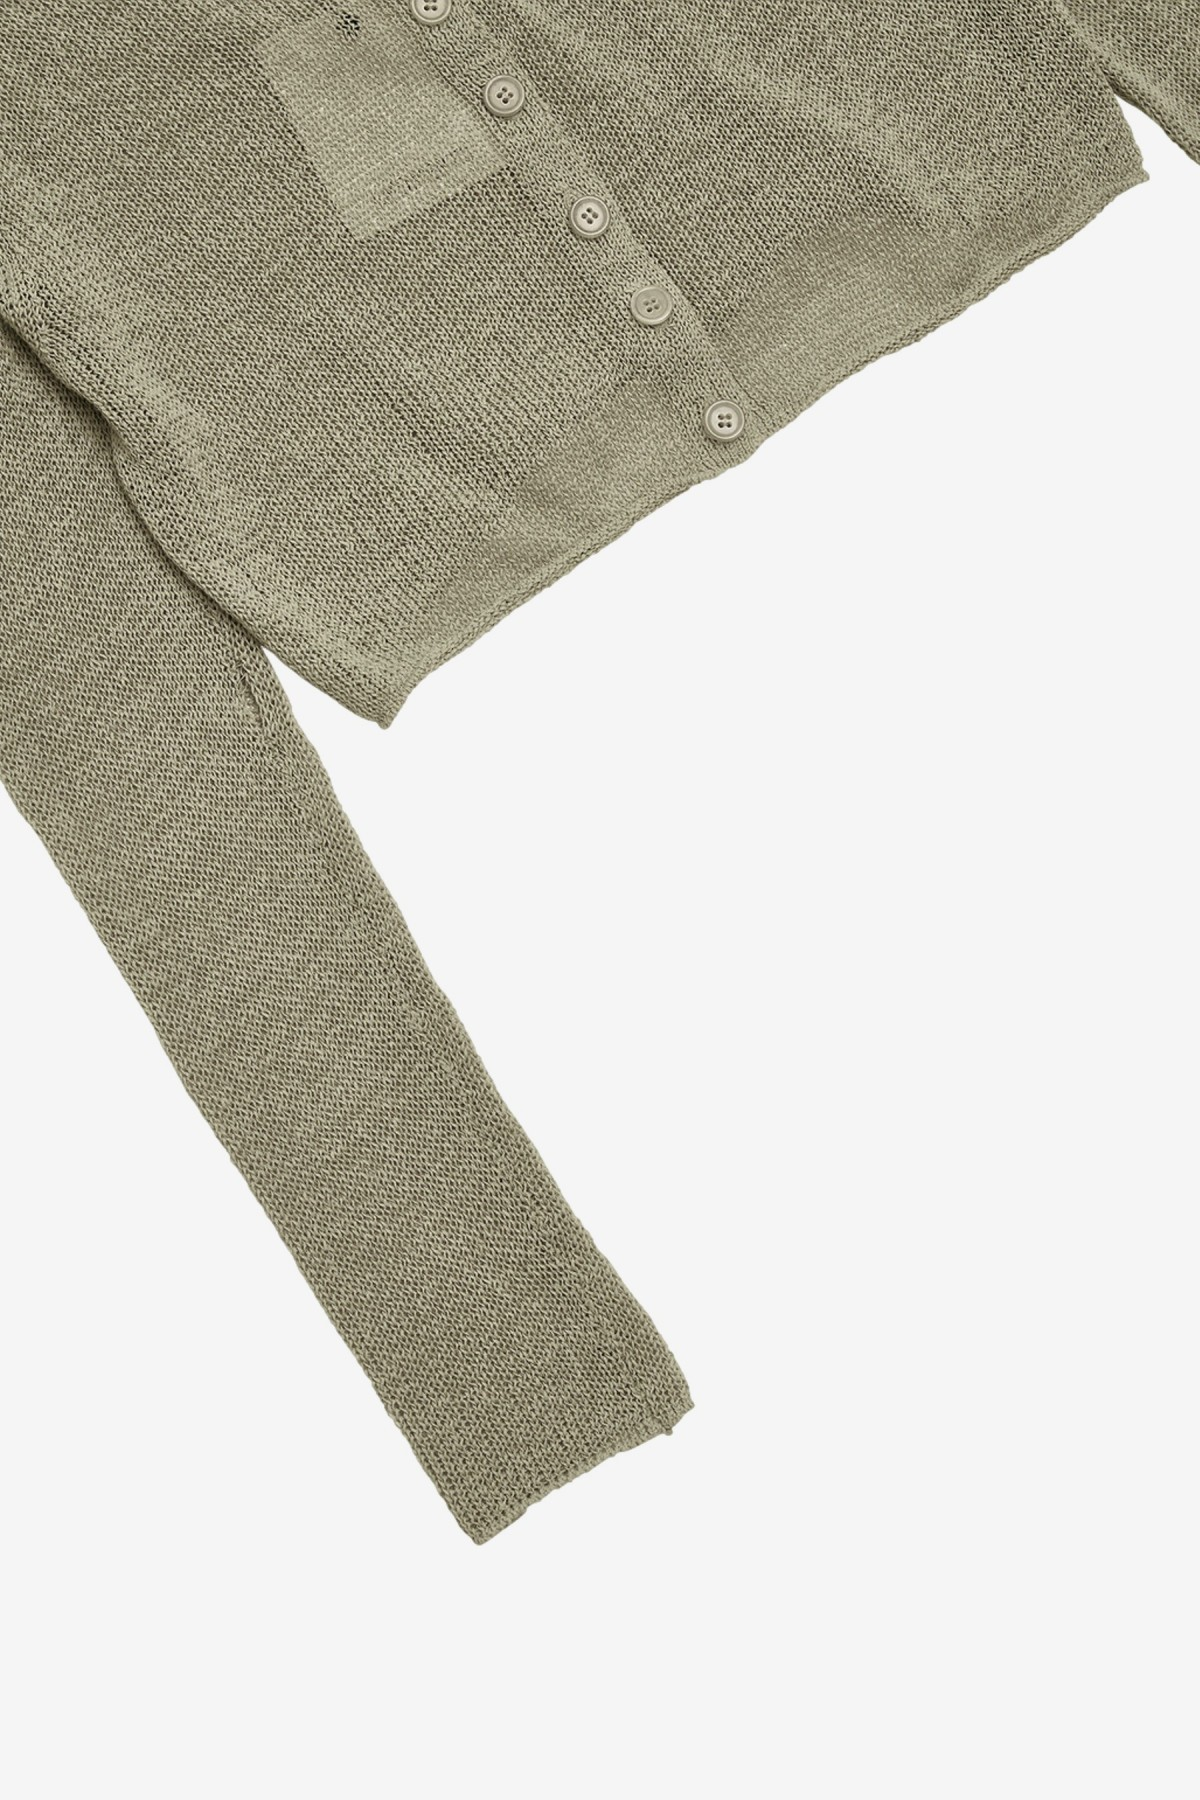 Amomento Natural Linen Cardigan in Olive